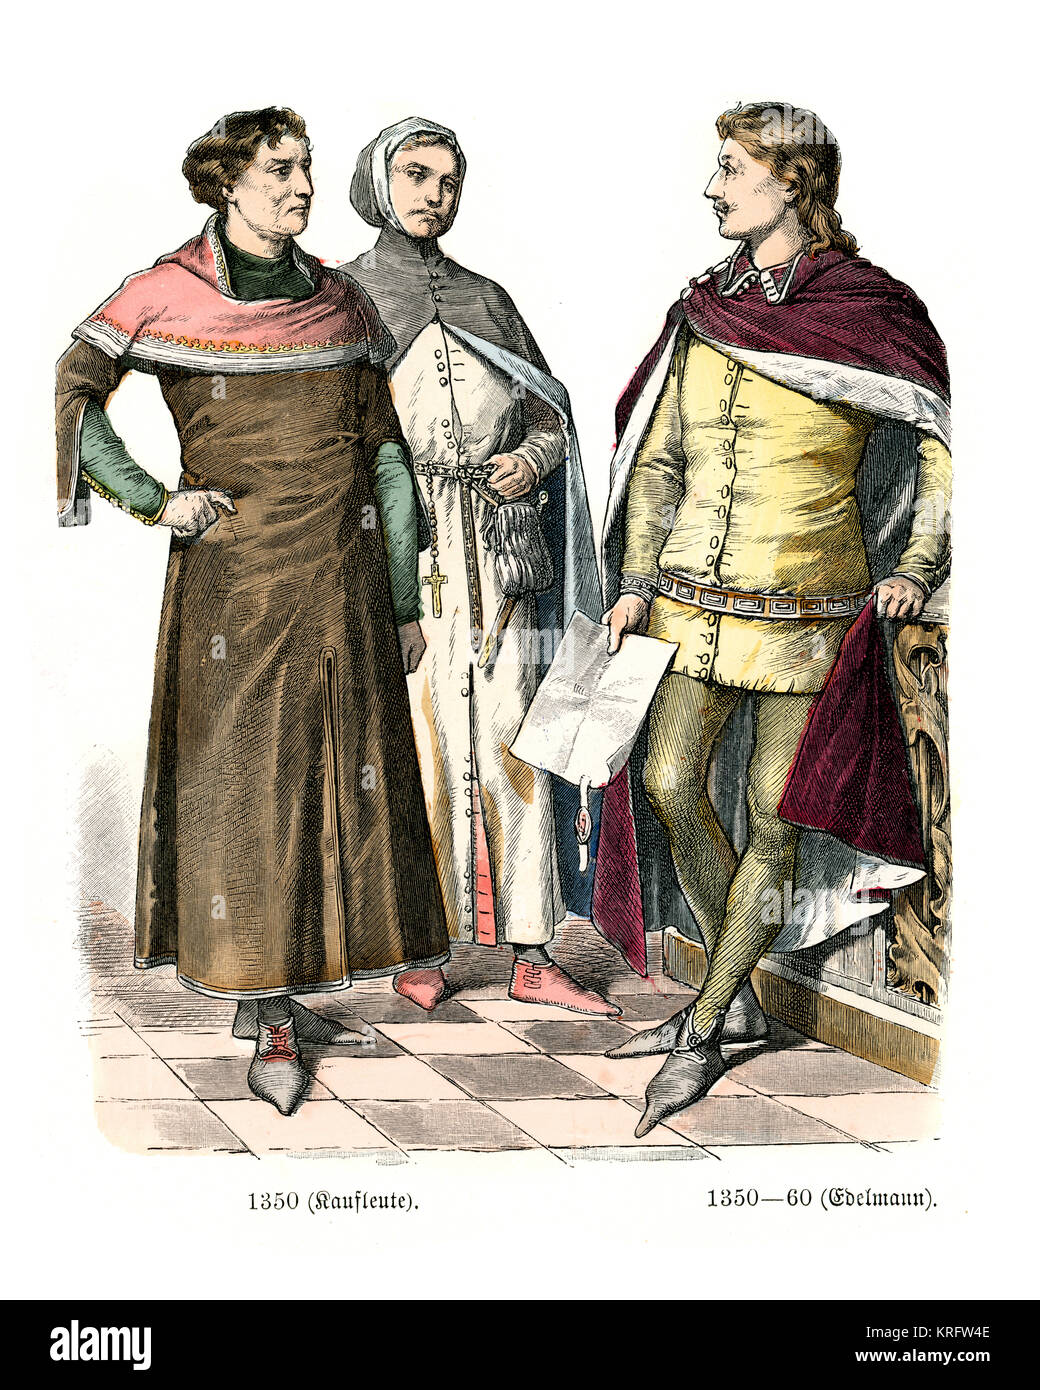 Vintage engraving of English medieval clothing, 14th Century Stock